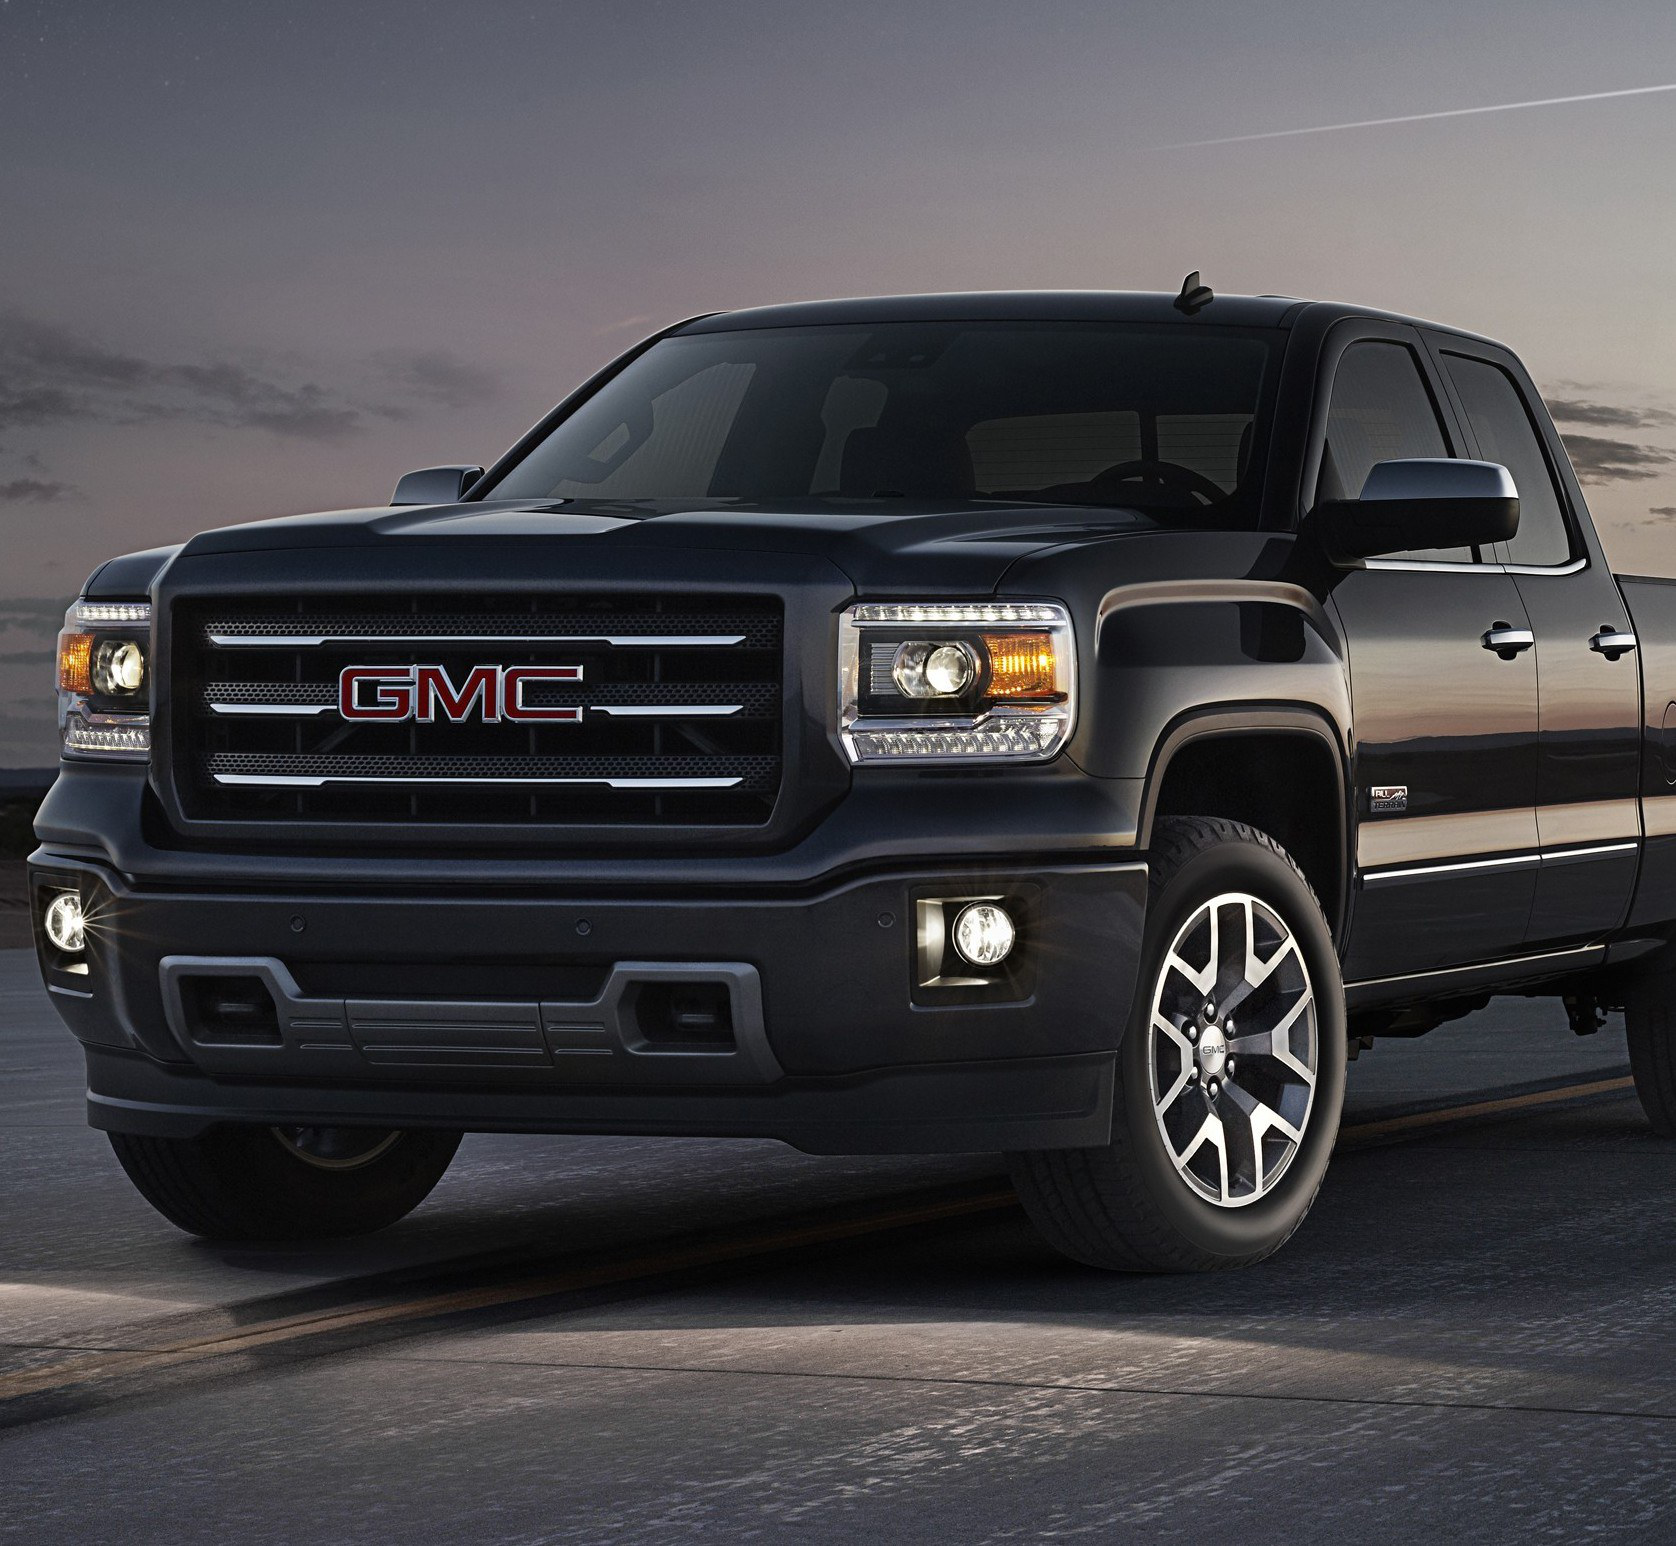 2014 Gmc Sierra All Terrain Extended Cab Front Three